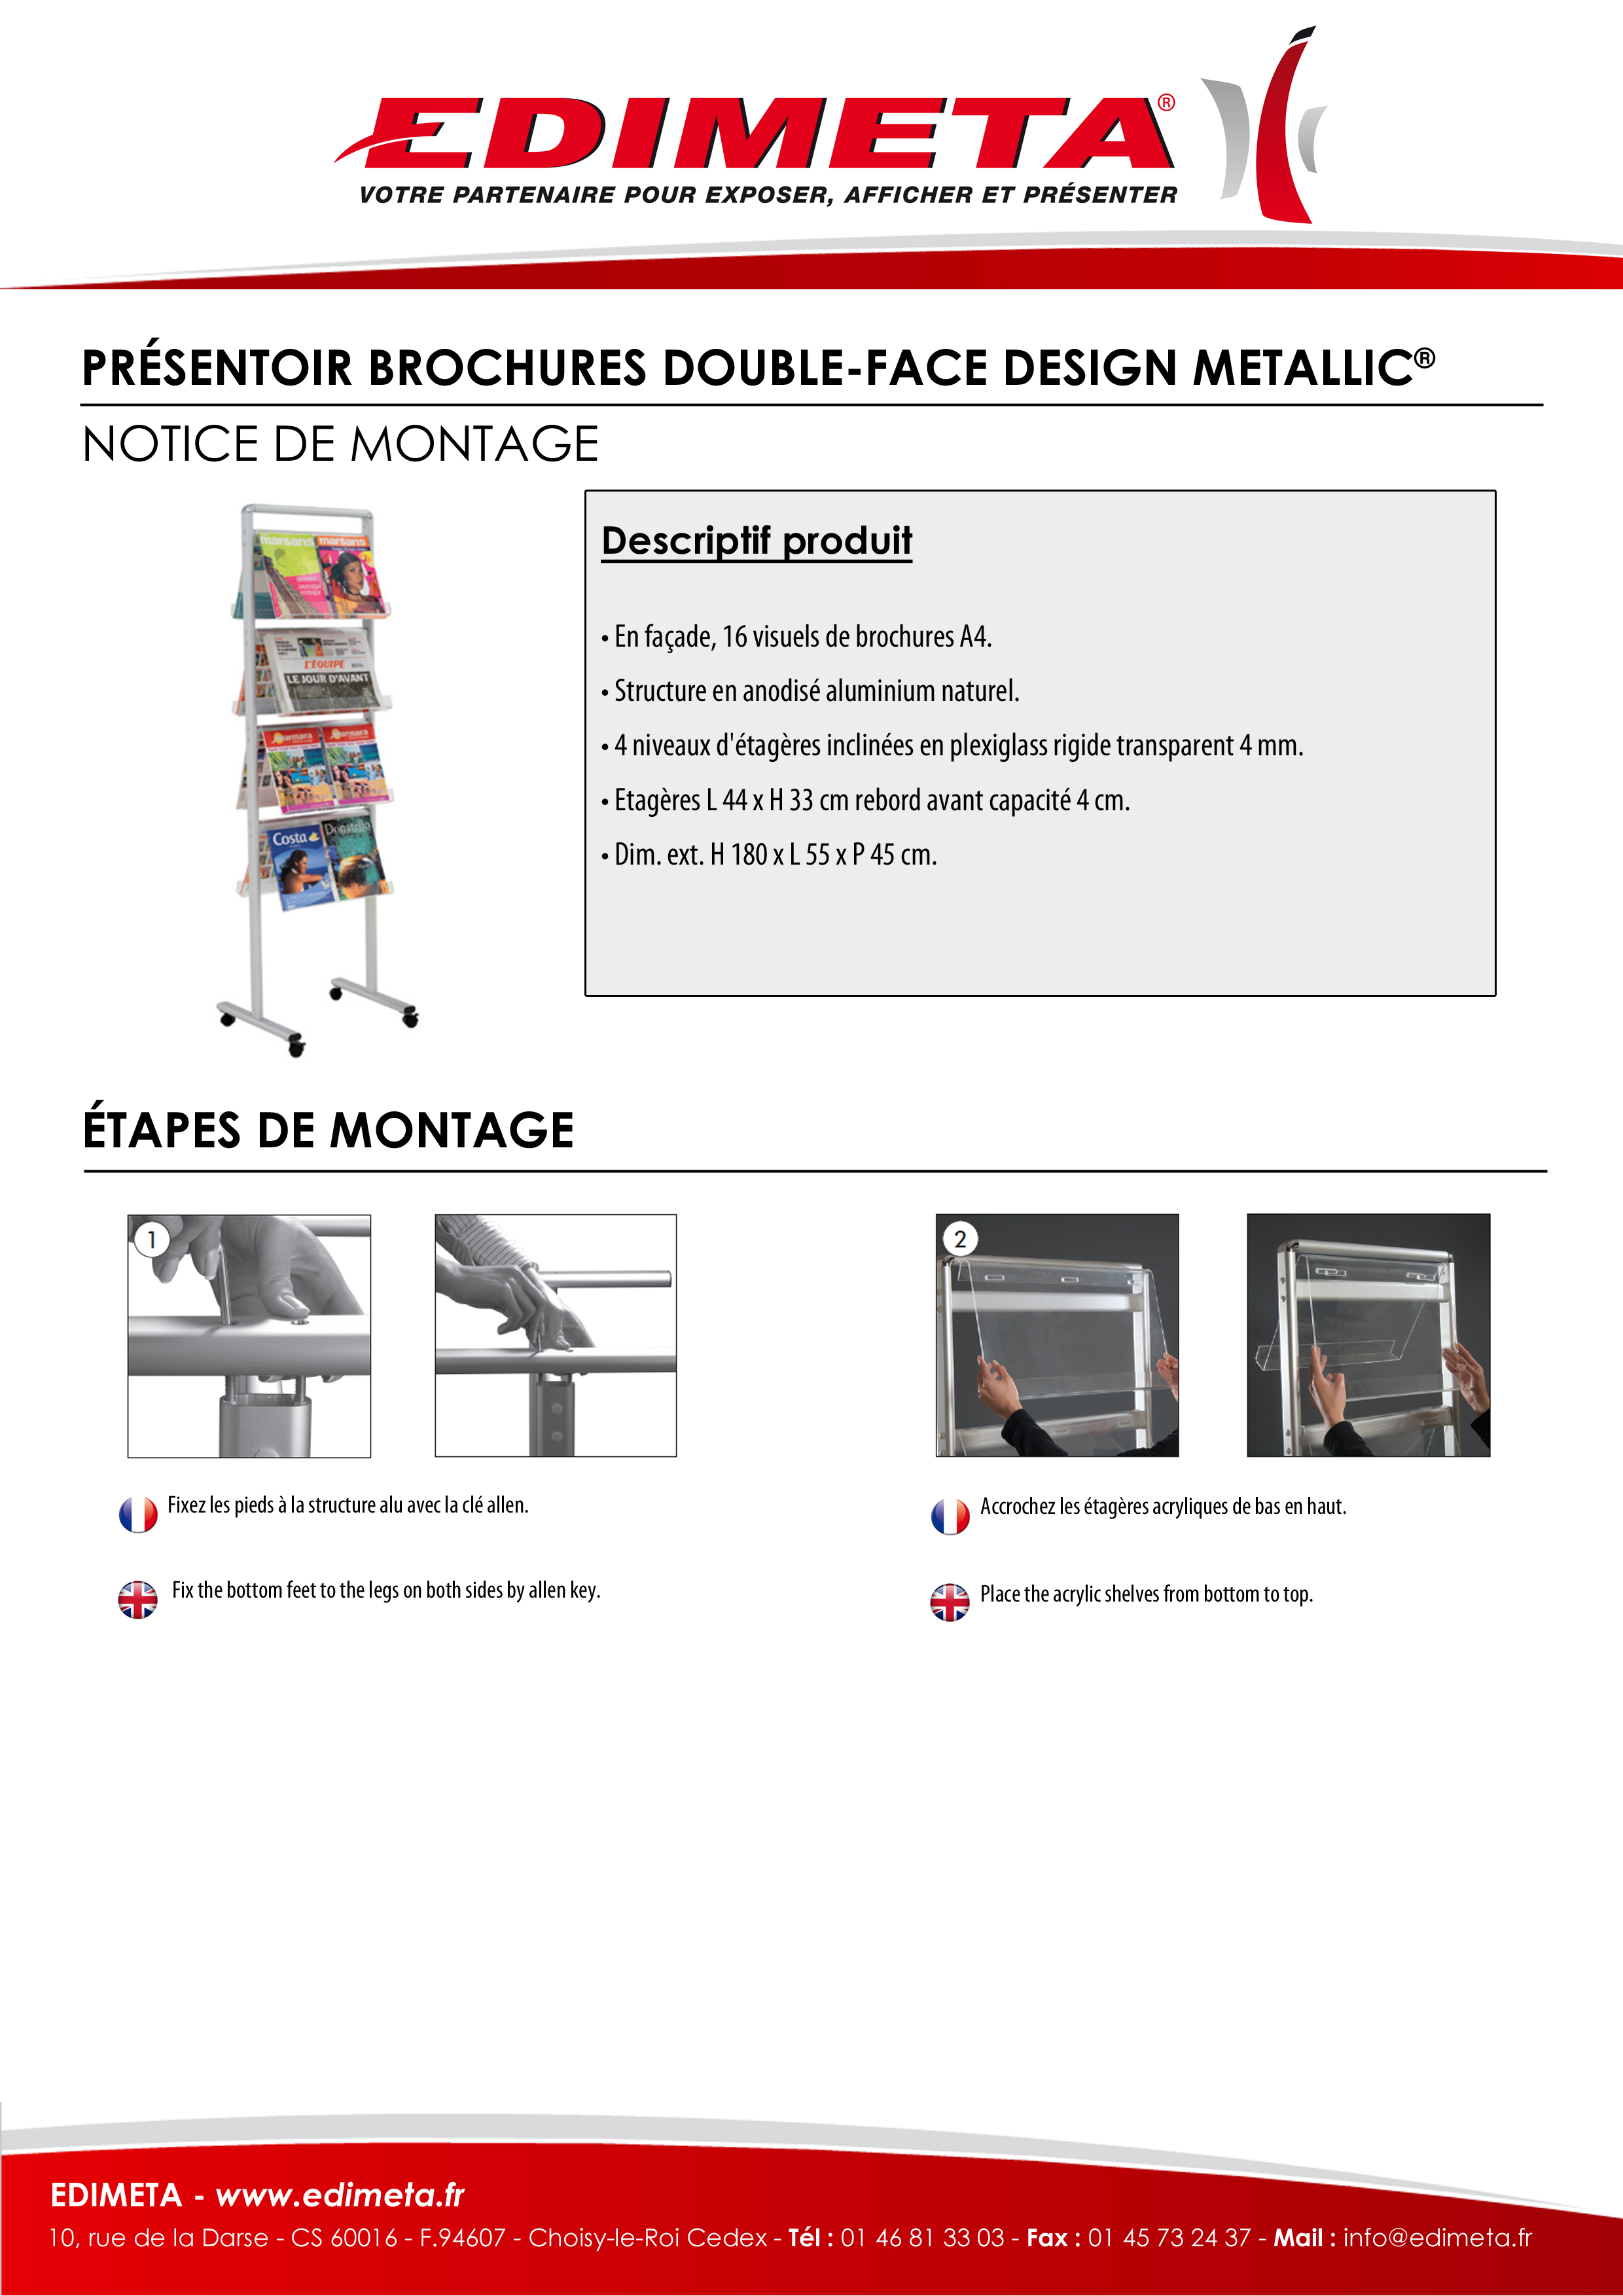 NOTICE DE MONTAGE : PRÉSENTOIR BROCHURES DOUBLE-FACE DESIGN METALLIC®